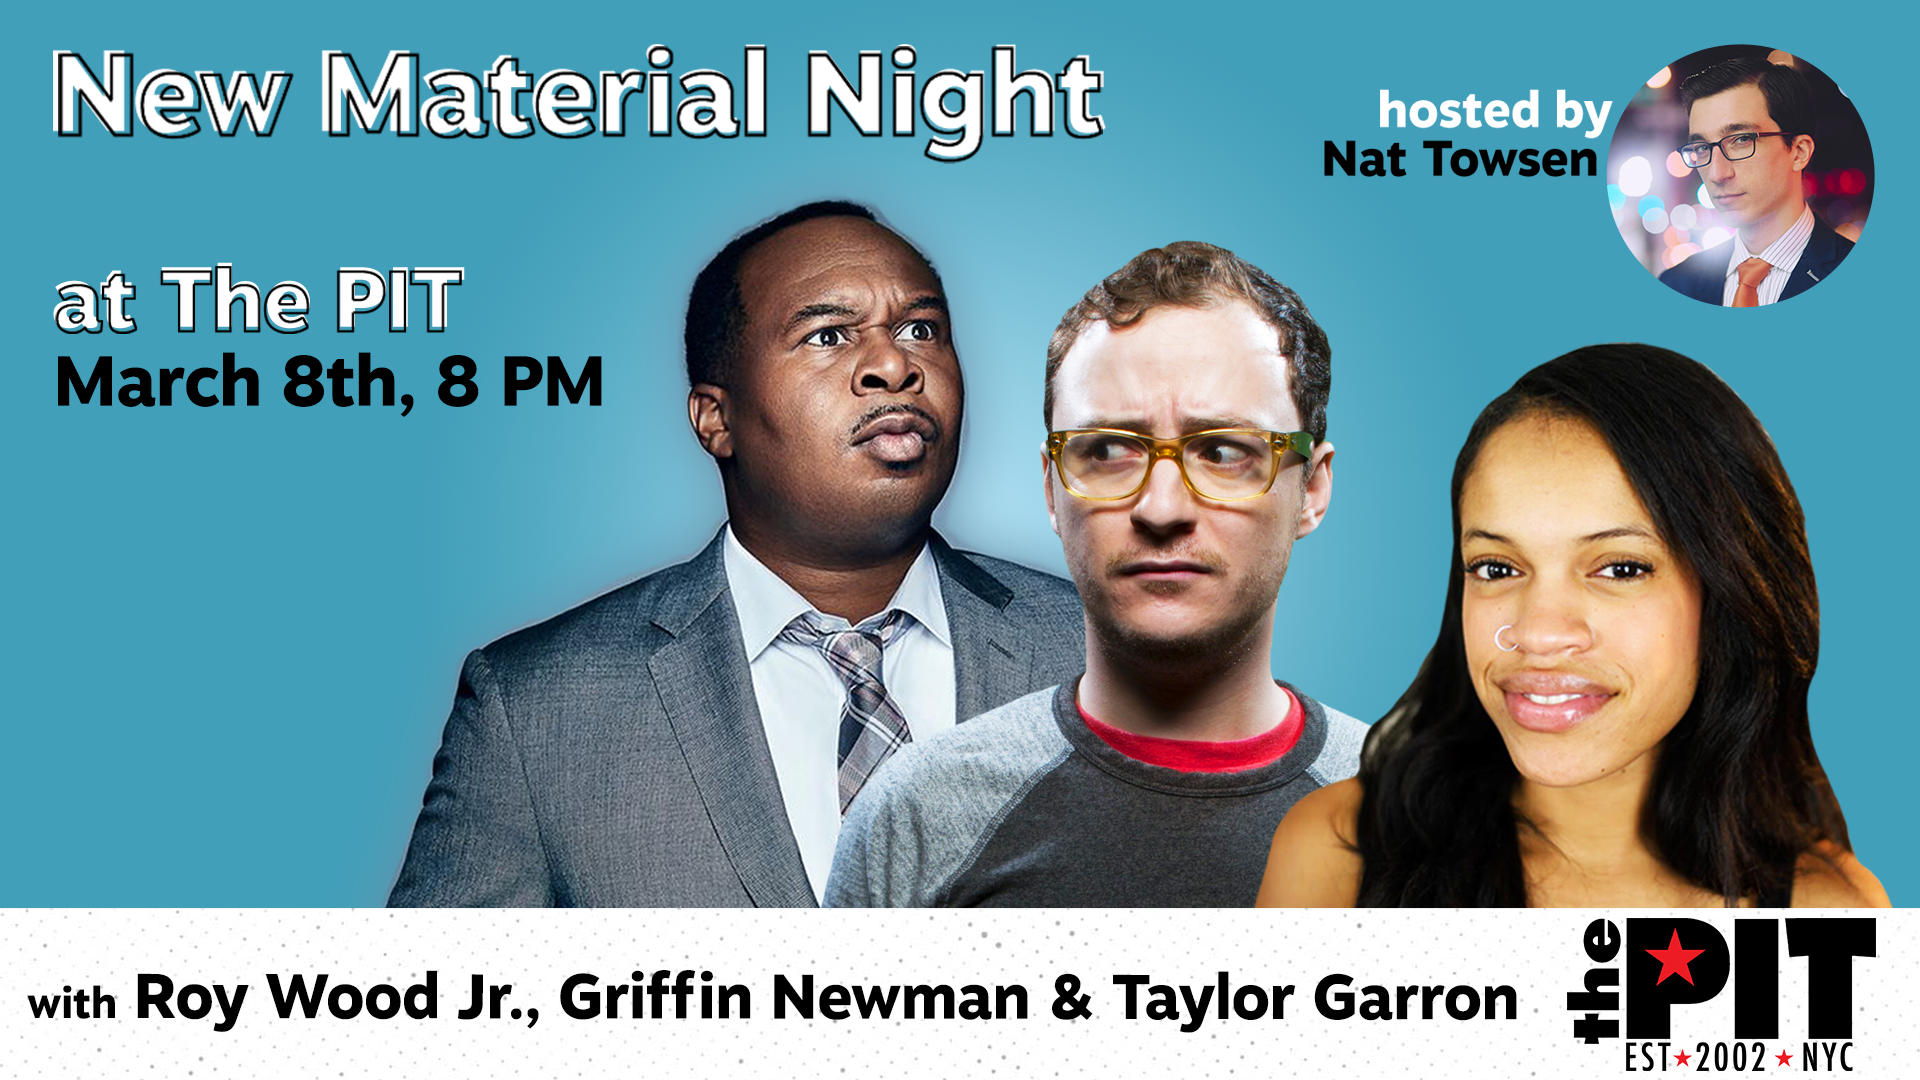 Roy Wood Jr., Griffin Newman, Taylor Garron, and Nat Towsen: